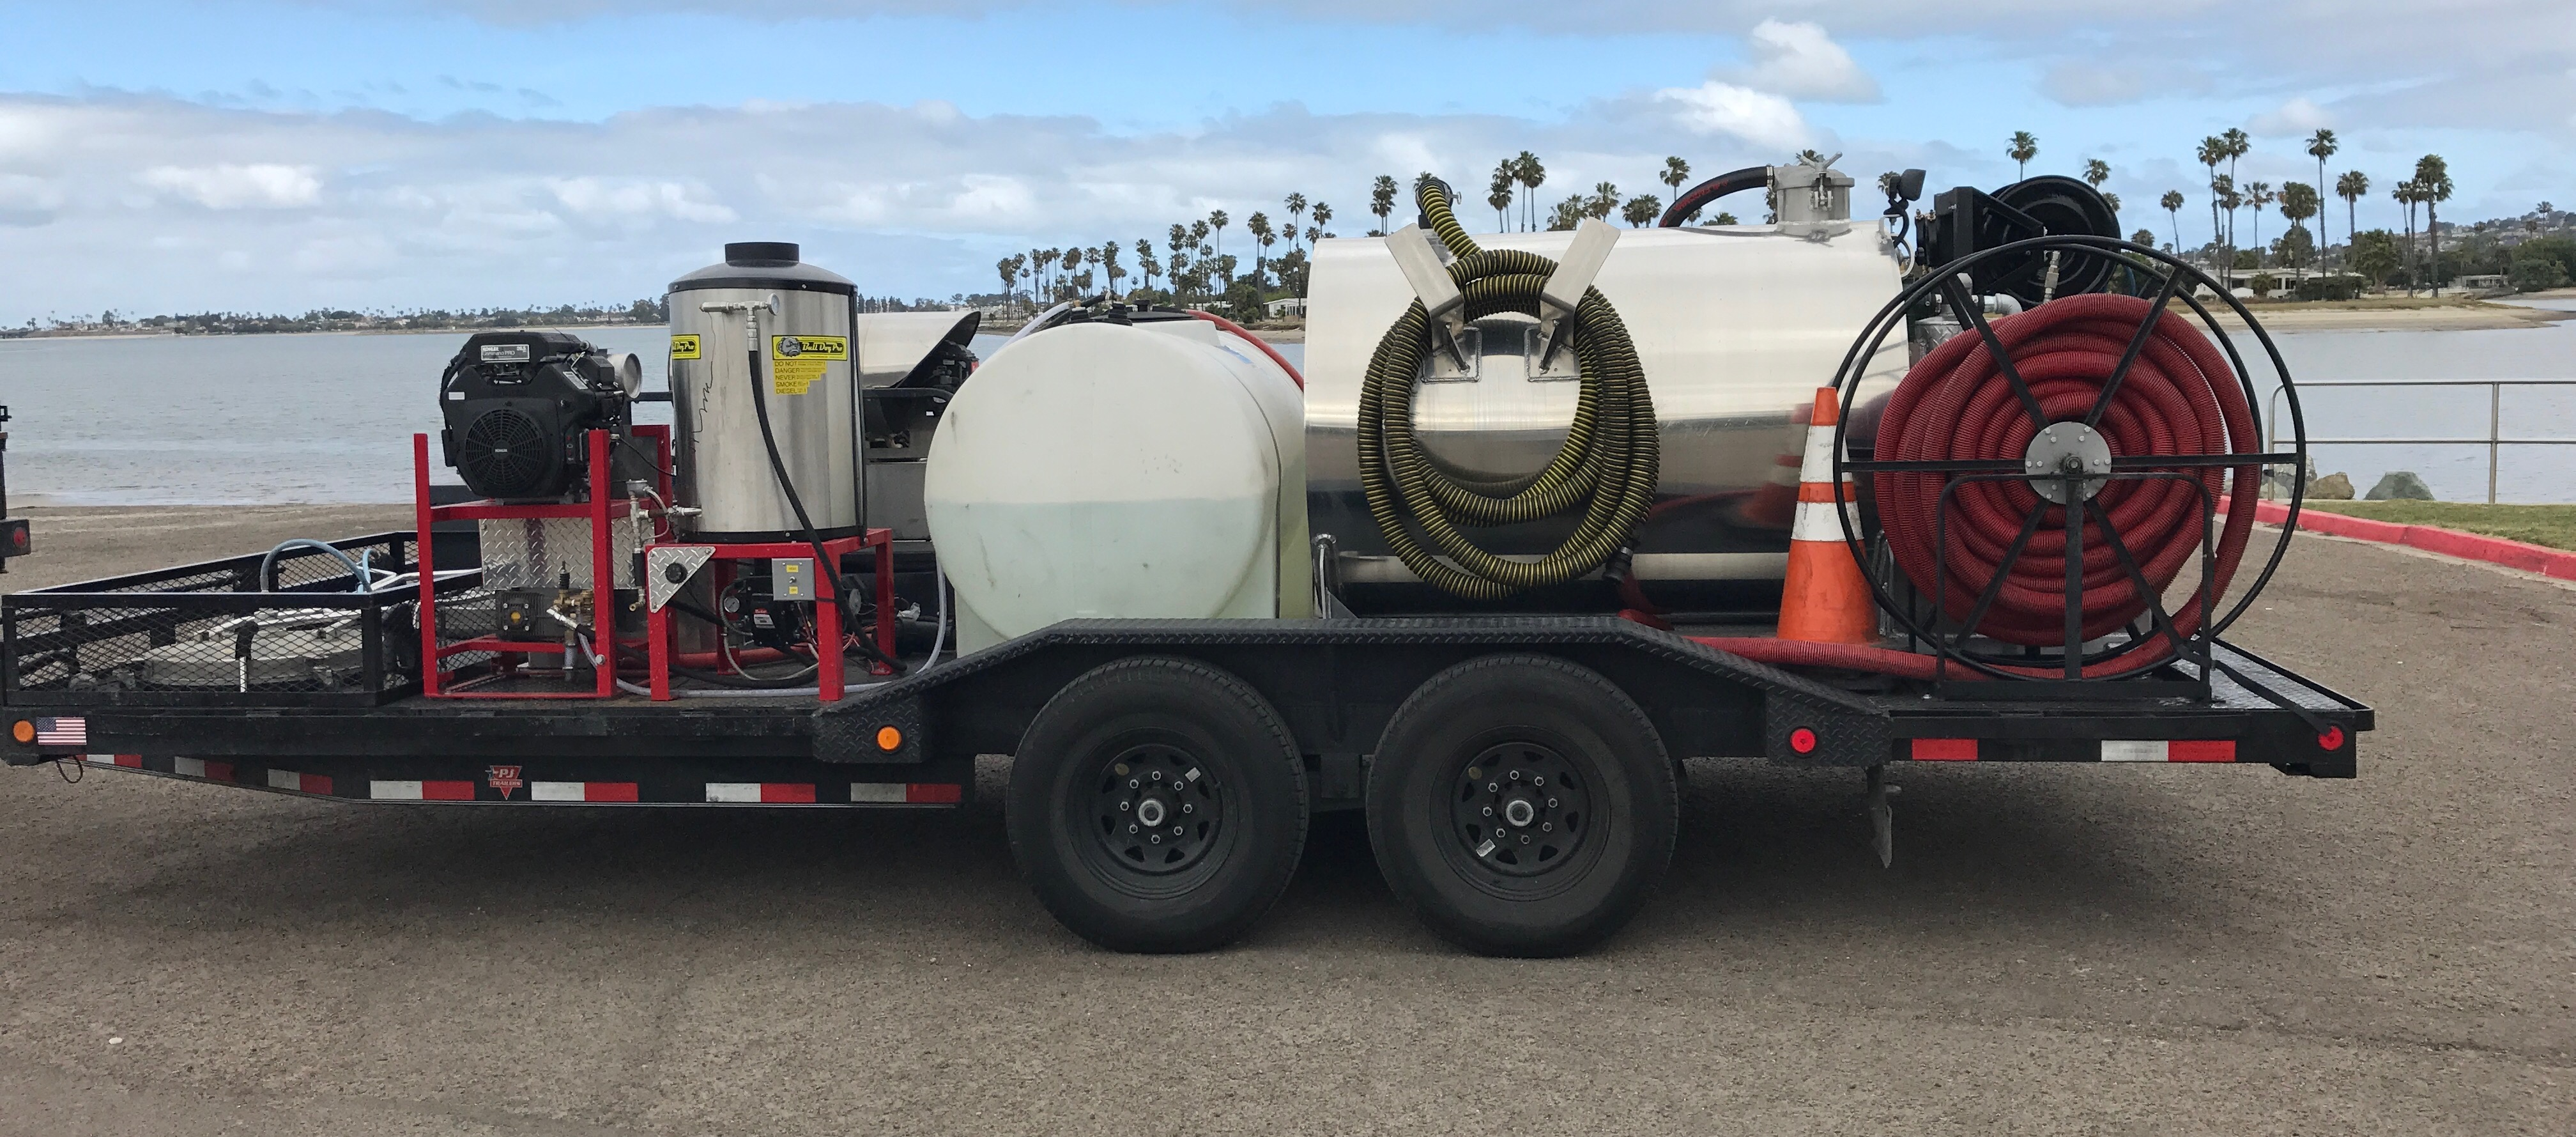 How Much Does Your Trailer With All Of Your Equipment Weigh Trailer Builds Pressure Washing Resource